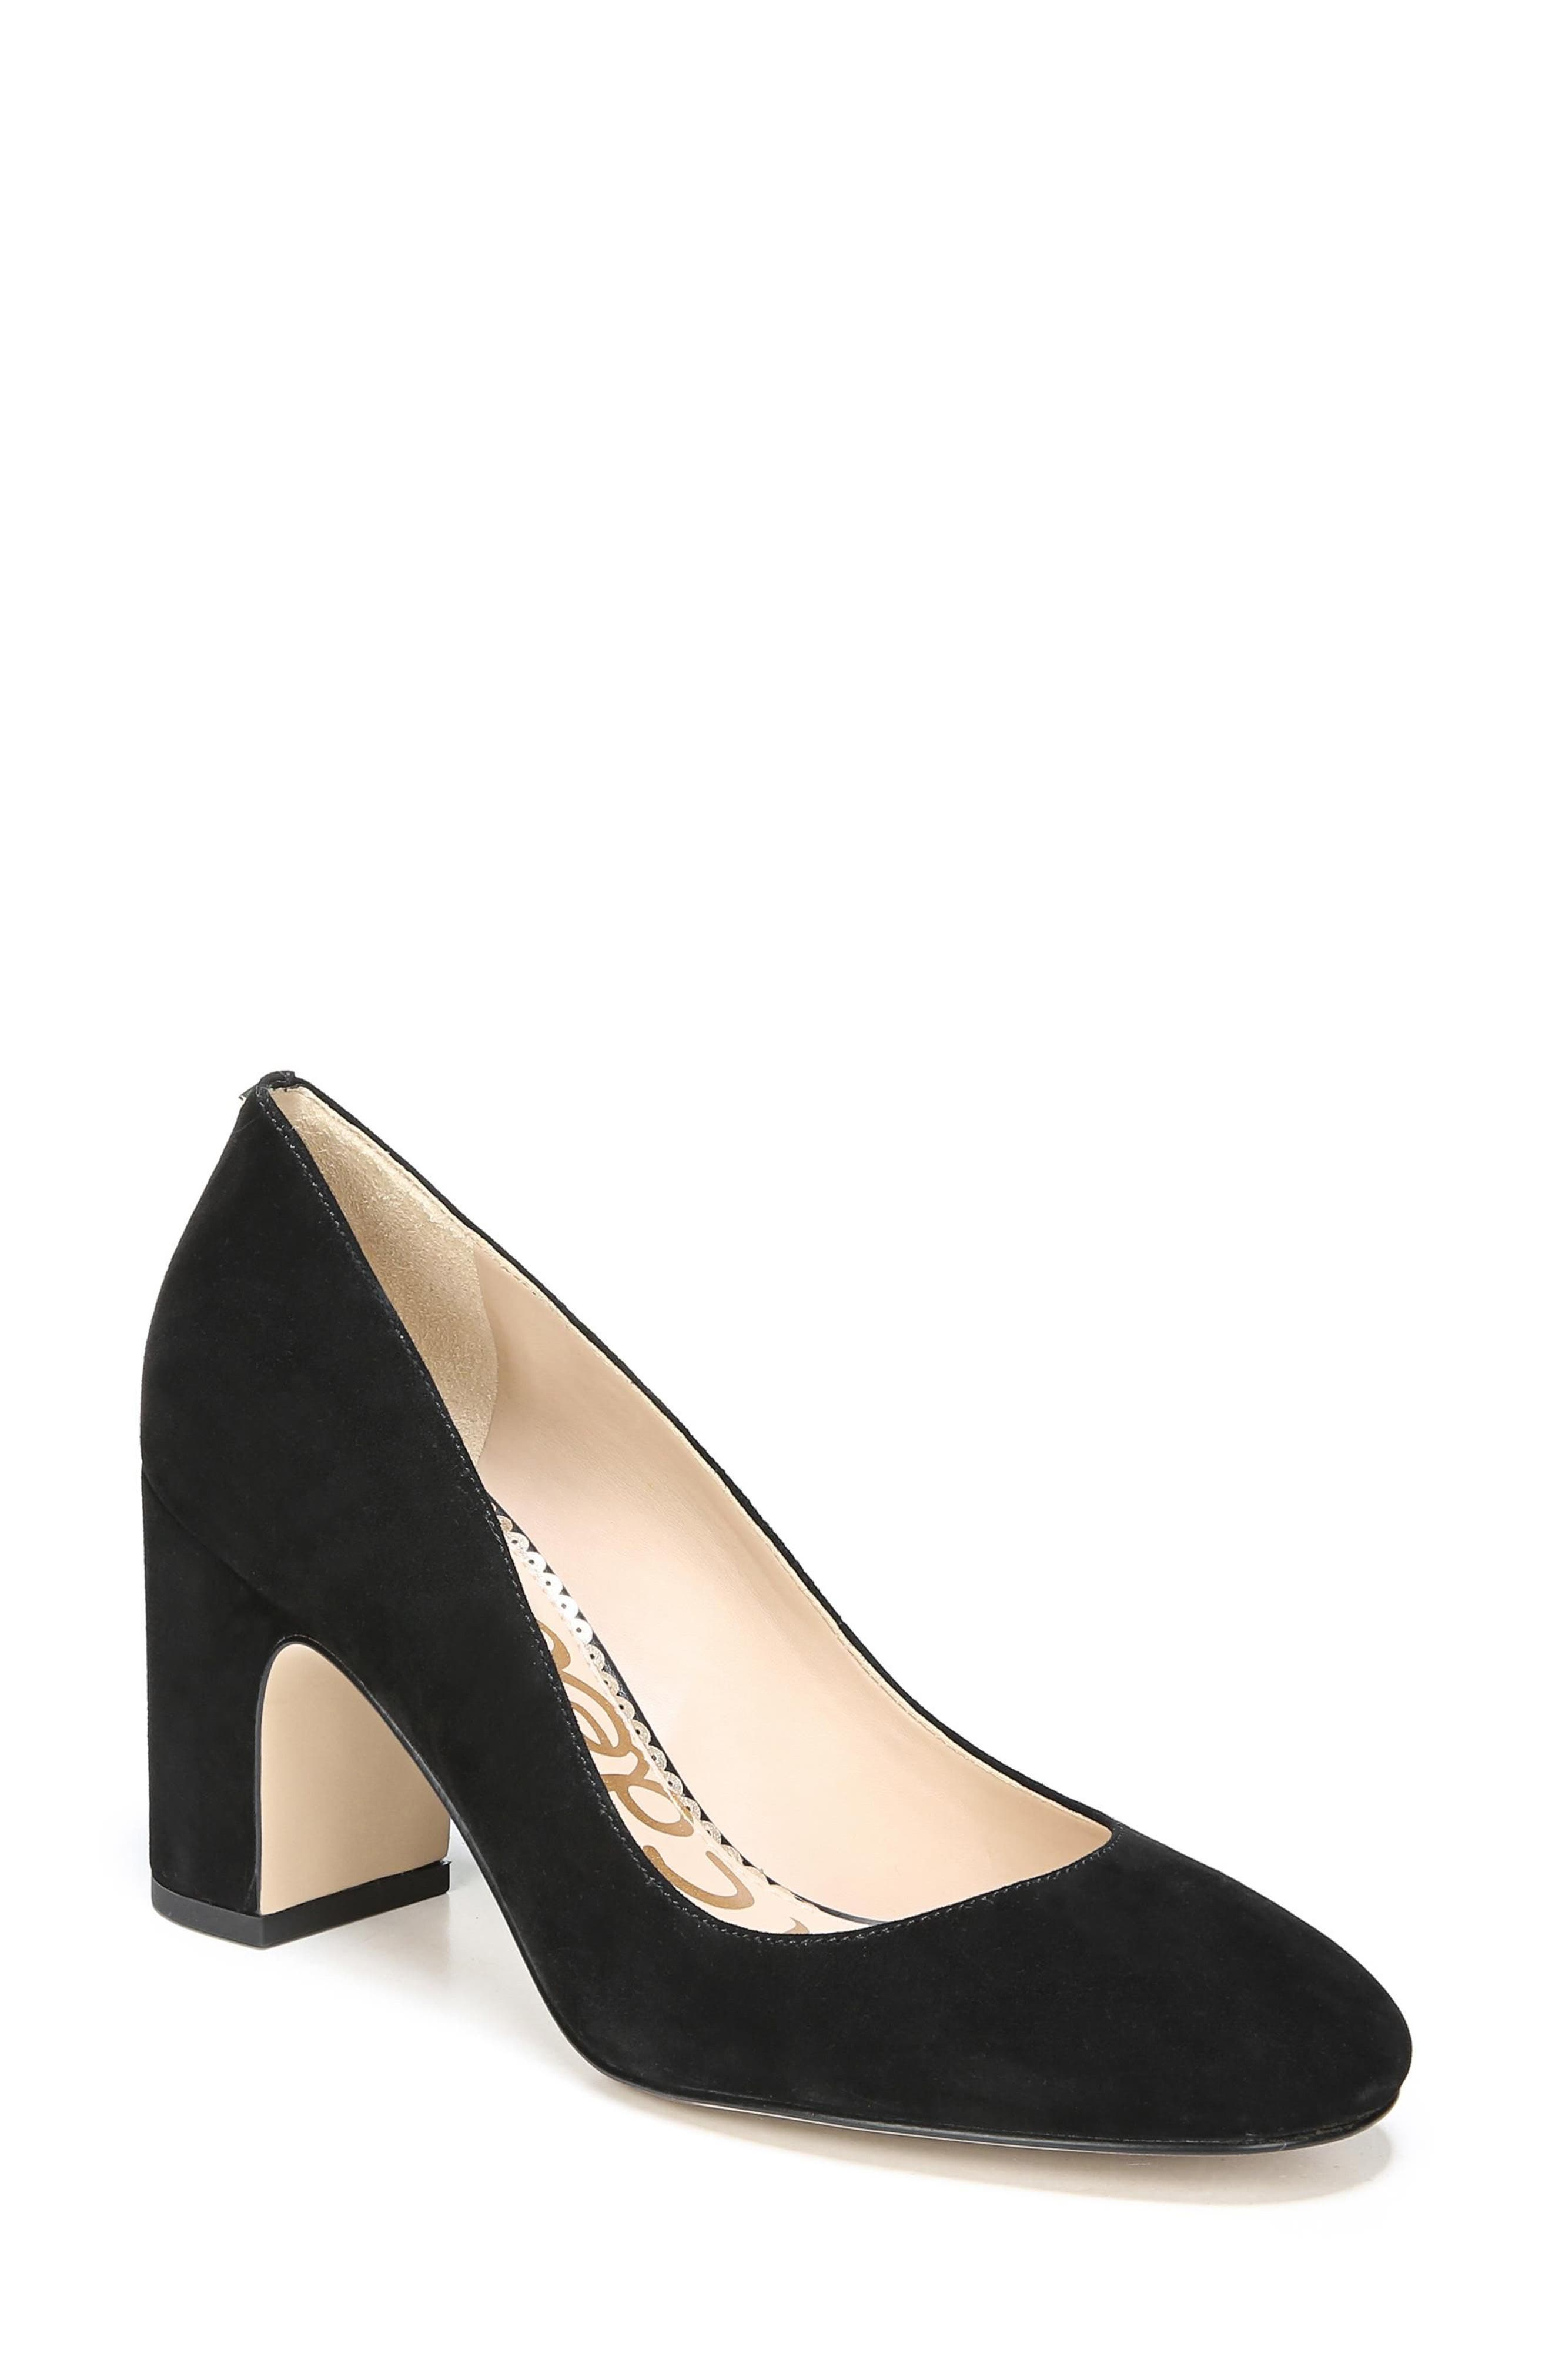 Junie Genuine Calf Hair Pump,                         Main,                         color, 001